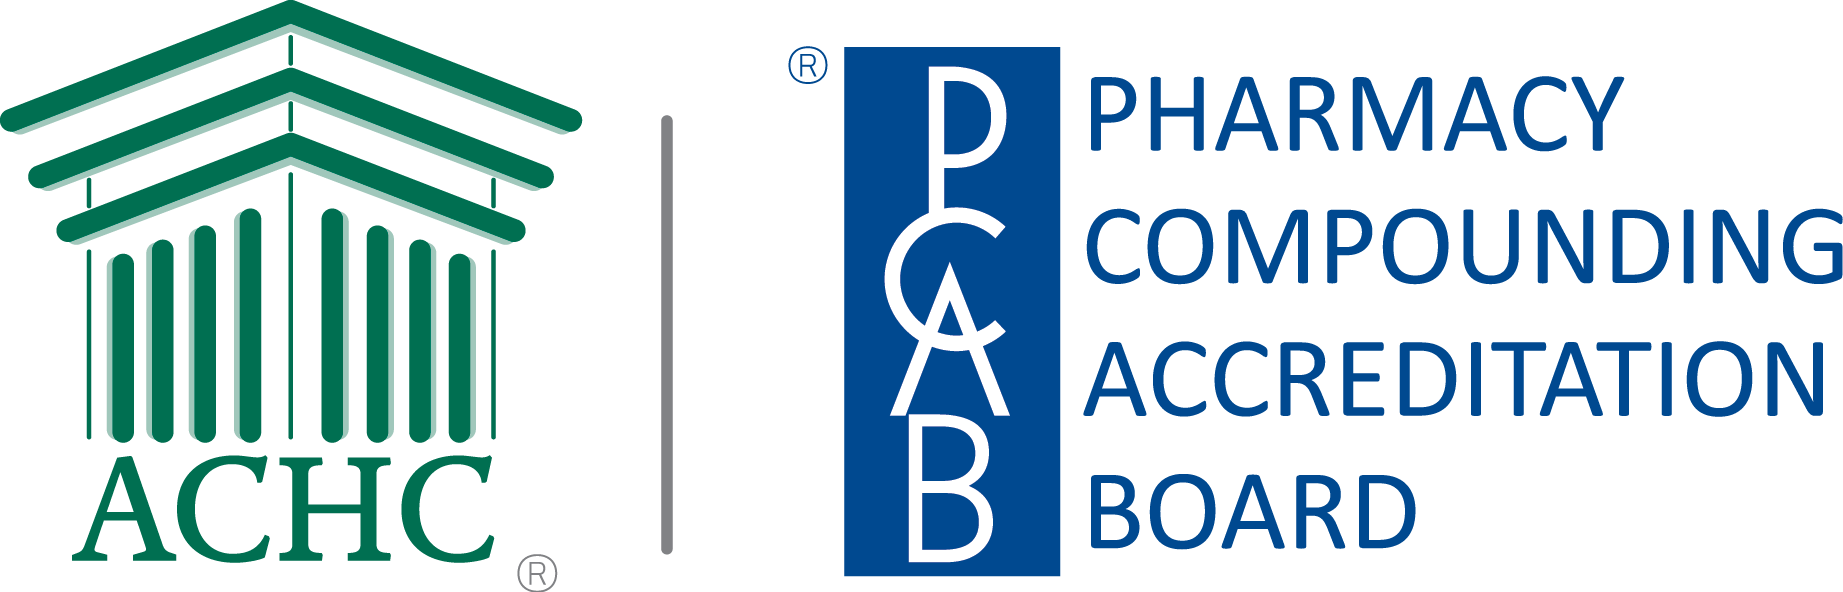 ACHC_PCAB_Cobranded_000.png